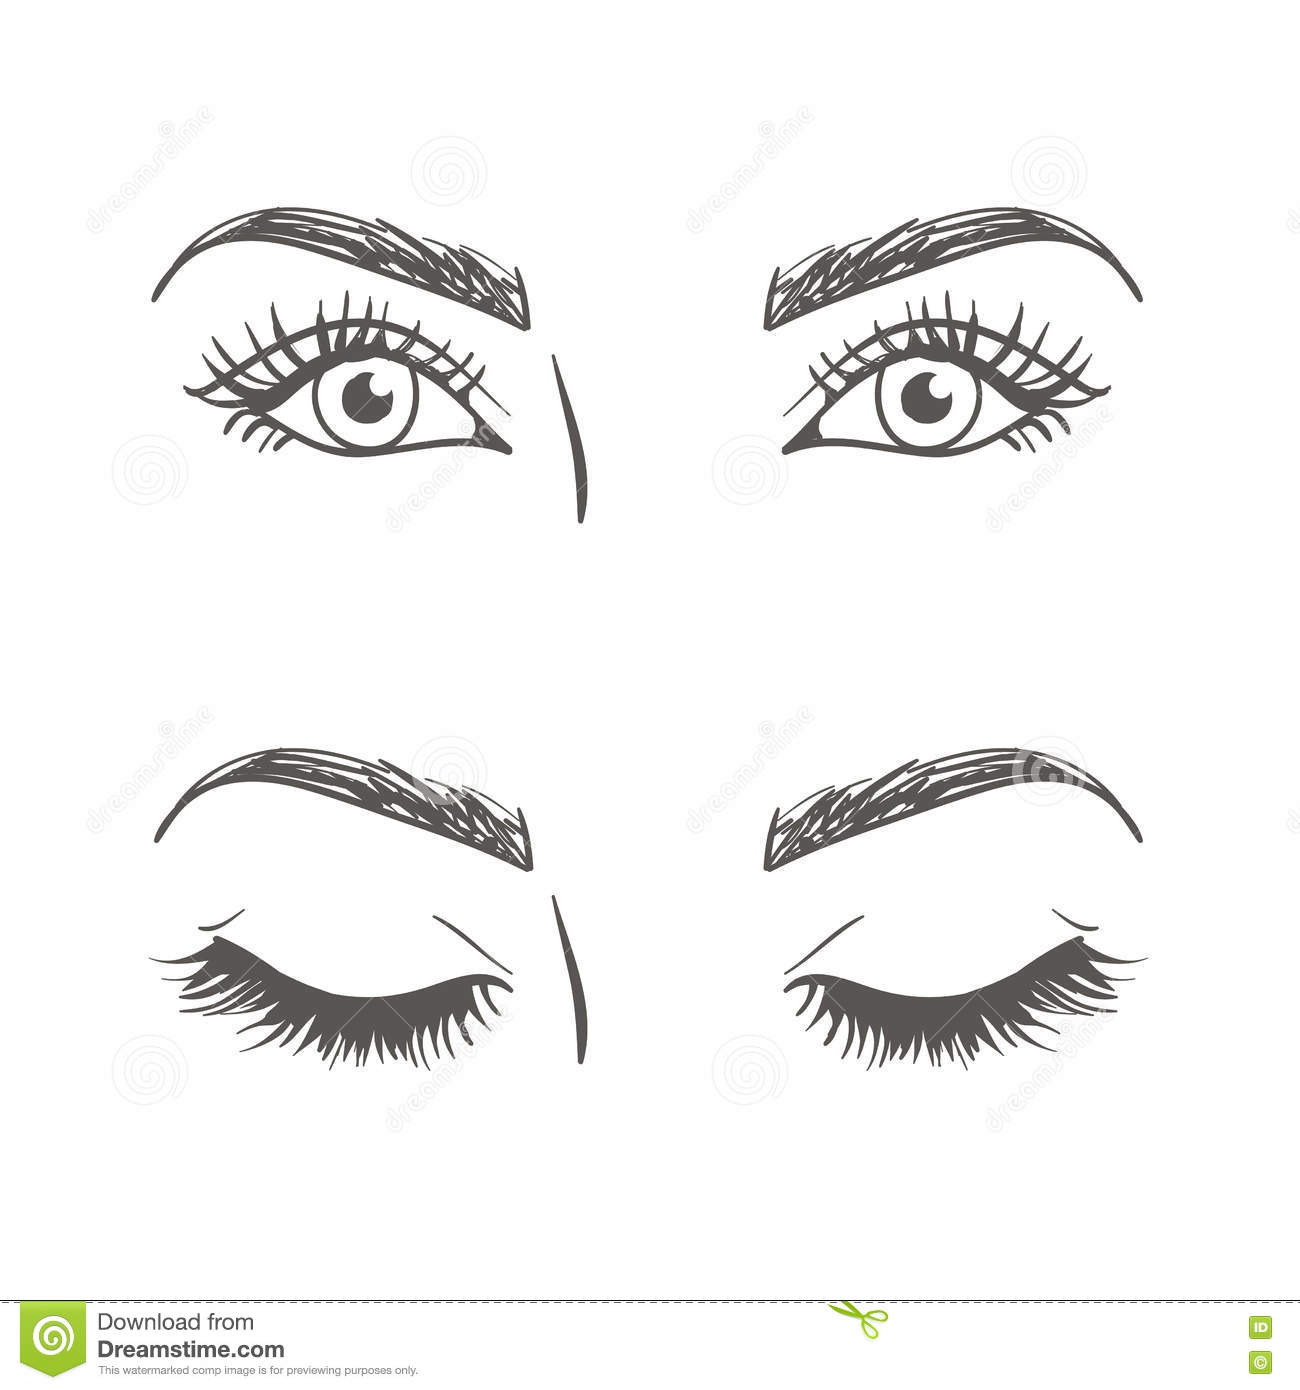 Drawing of the eye sto...